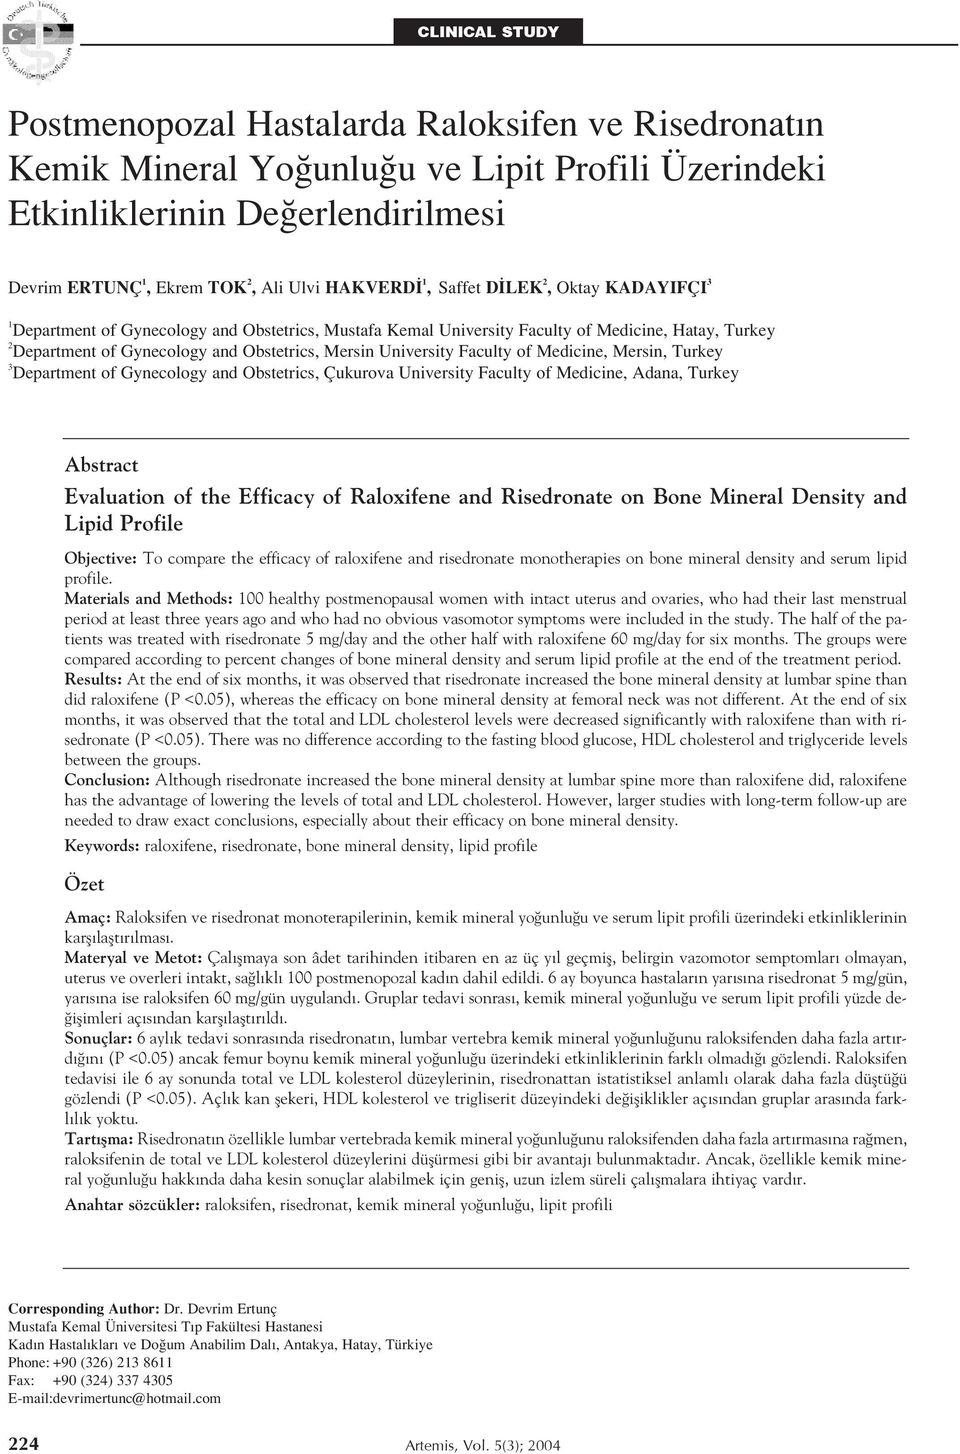 University Faculty of Medicine, Mersin, Turkey 3 Department of Gynecology and Obstetrics, Çukurova University Faculty of Medicine, Adana, Turkey Abstract Evaluation of the Efficacy of Raloxifene and